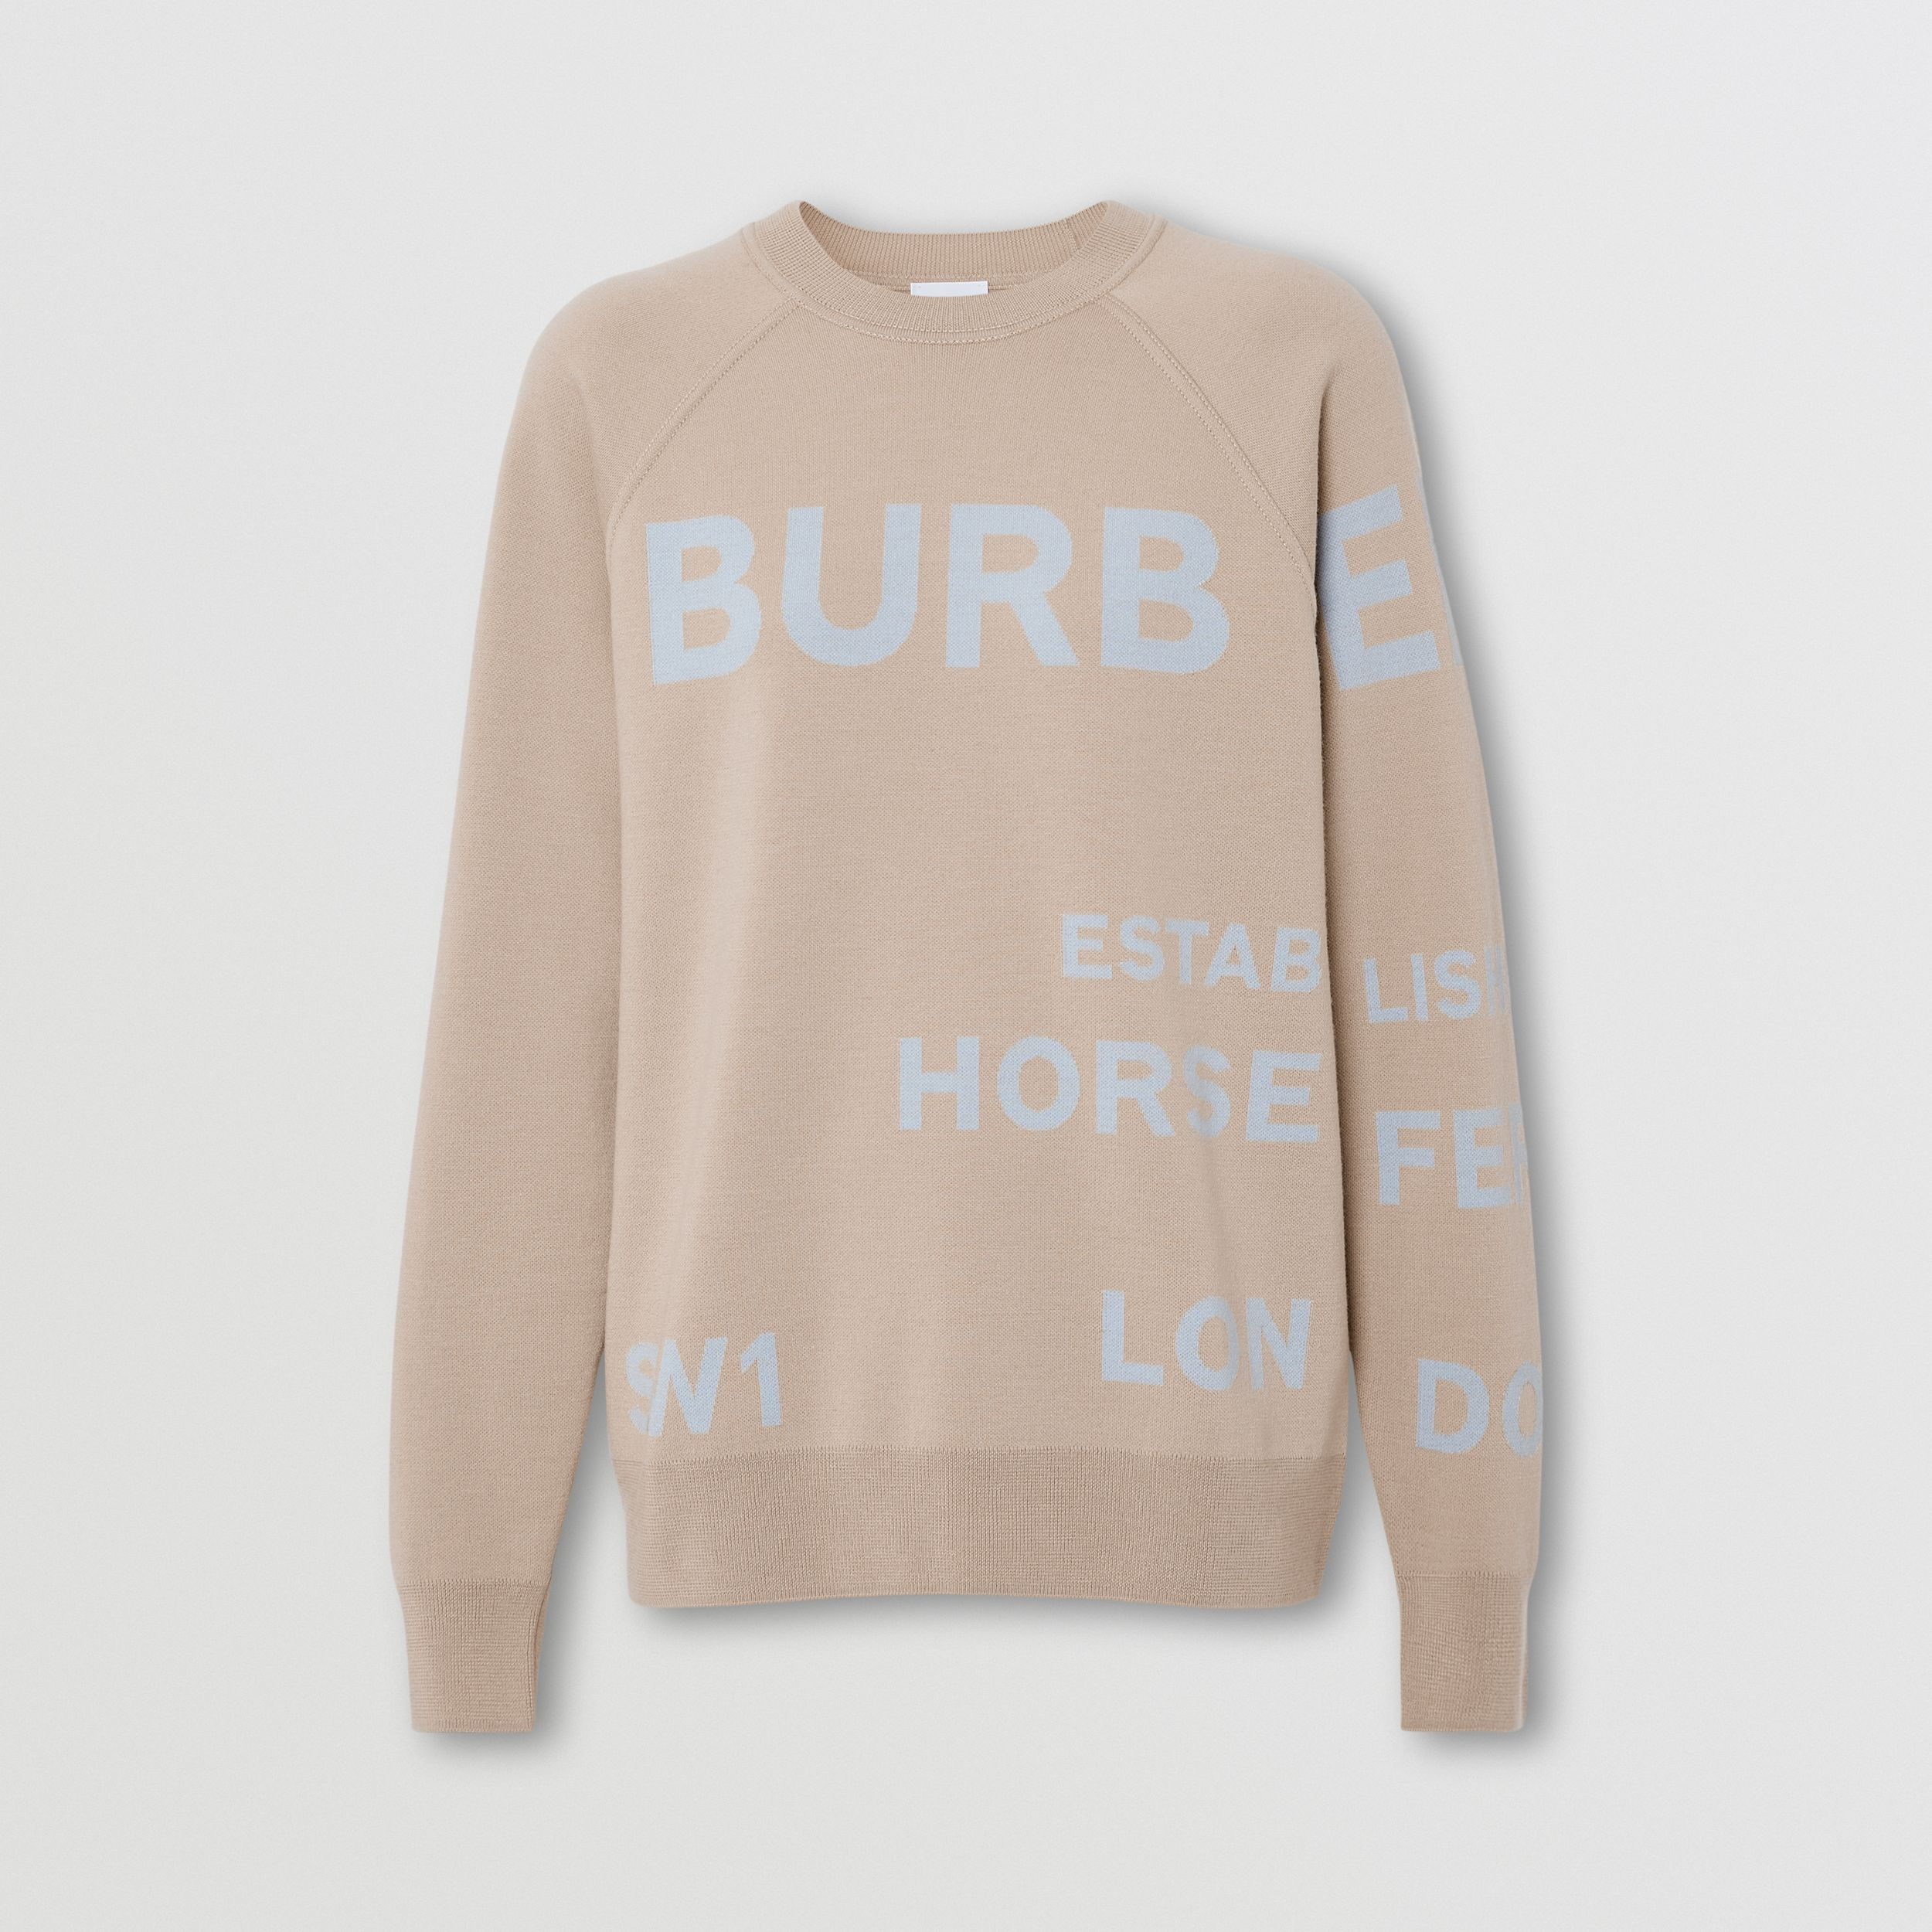 Horseferry Merino Wool Blend Jacquard Sweater in Soft Fawn - Women | Burberry - 4